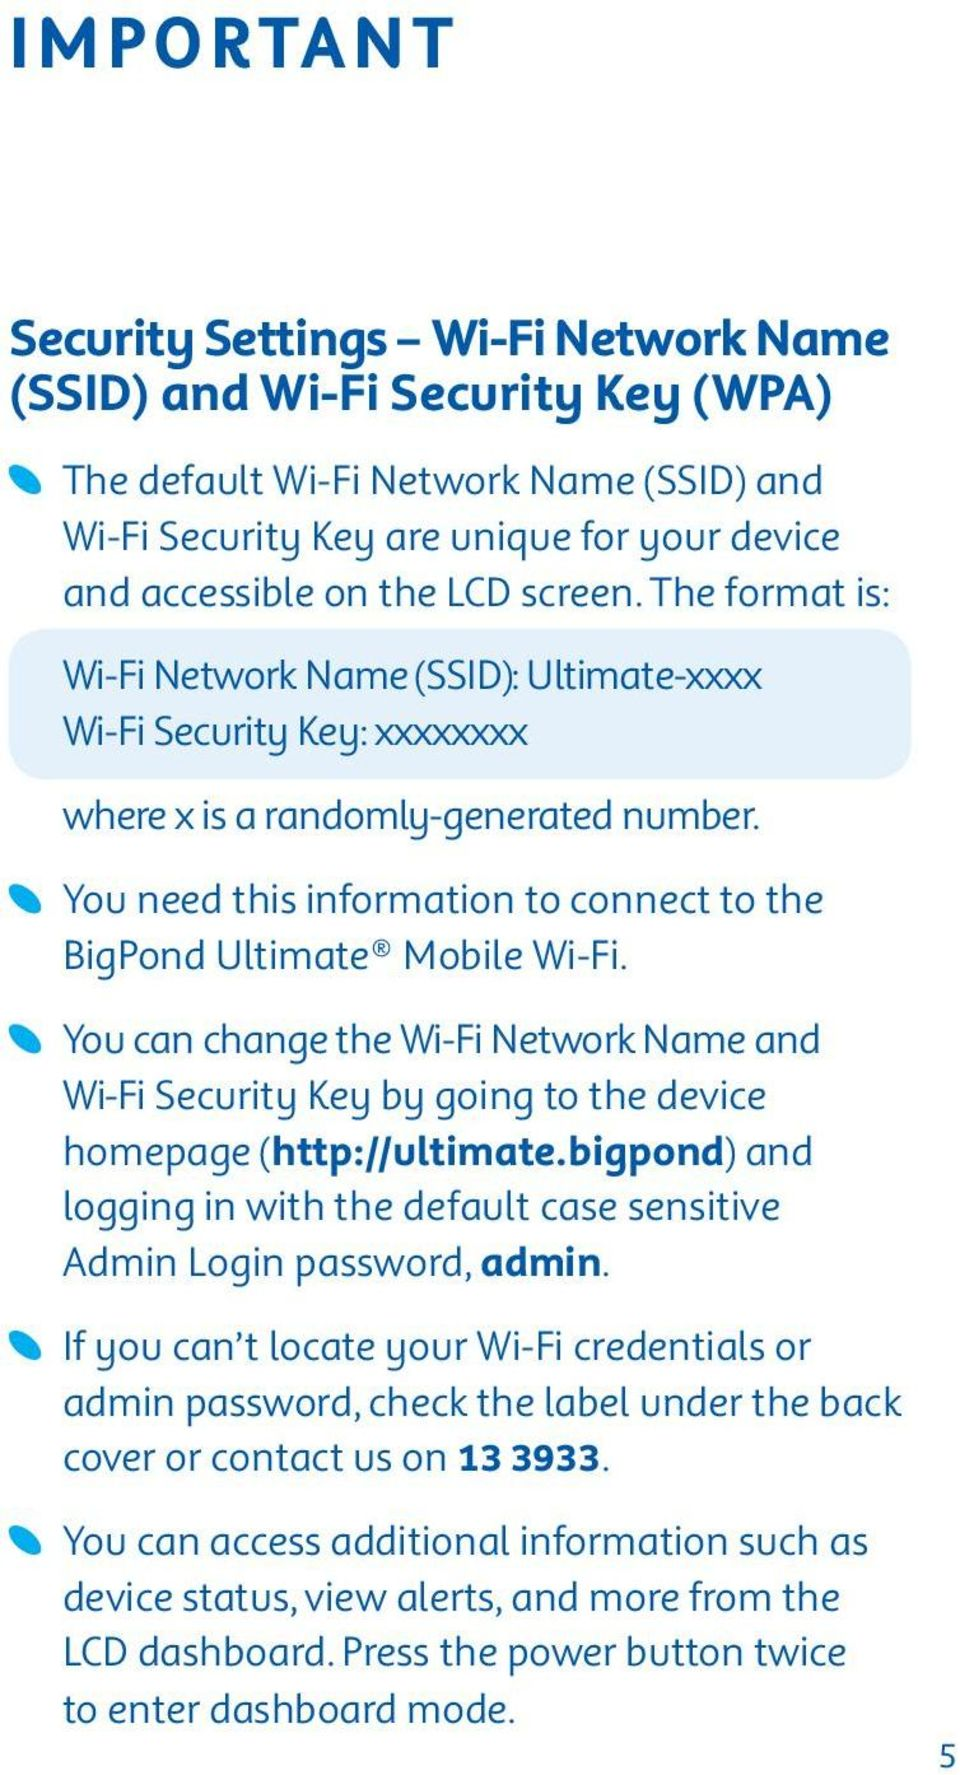 You need this information to connect to the BigPond Ultimate Mobile Wi-Fi. You can change the Wi-Fi Network Name and Wi-Fi Security Key by going to the device homepage (http://ultimate.